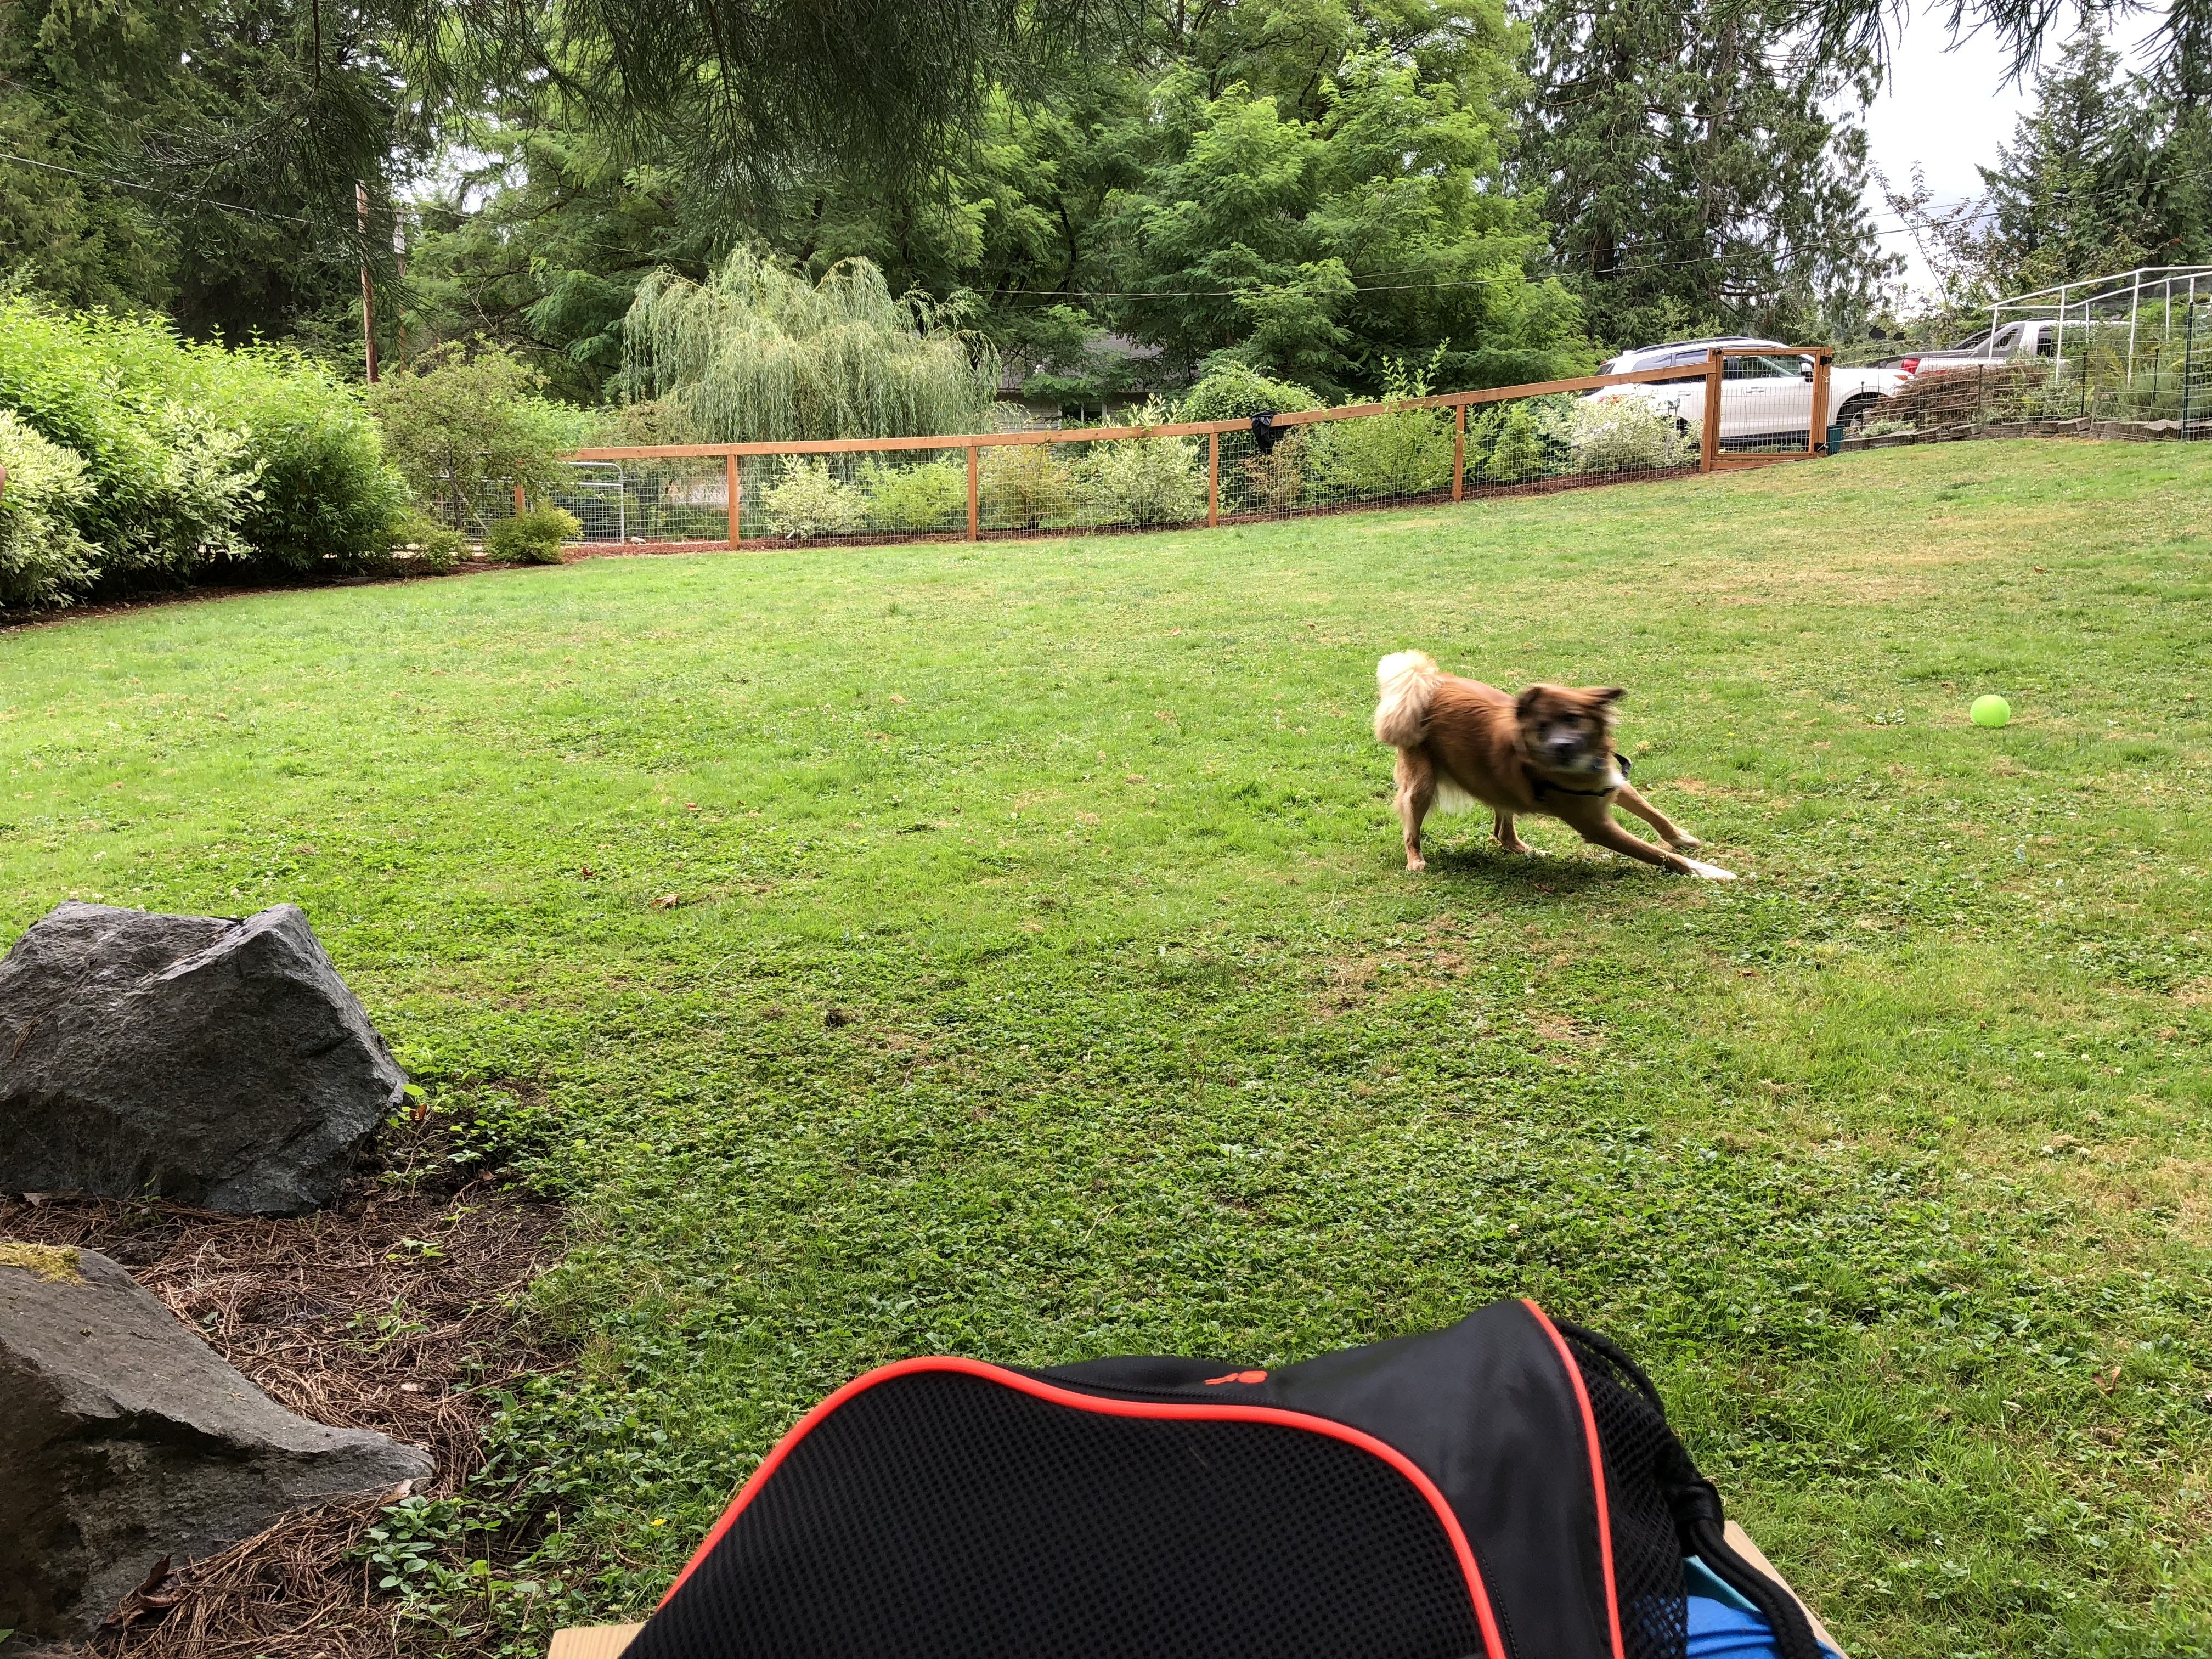 This Photo Is From A Sniff Spot A Privately Bookable Off Leash Area Sniffspot Is An Alternative To Dog Parks Sniffspot Enables Anyone Dogs Pup Dog Park